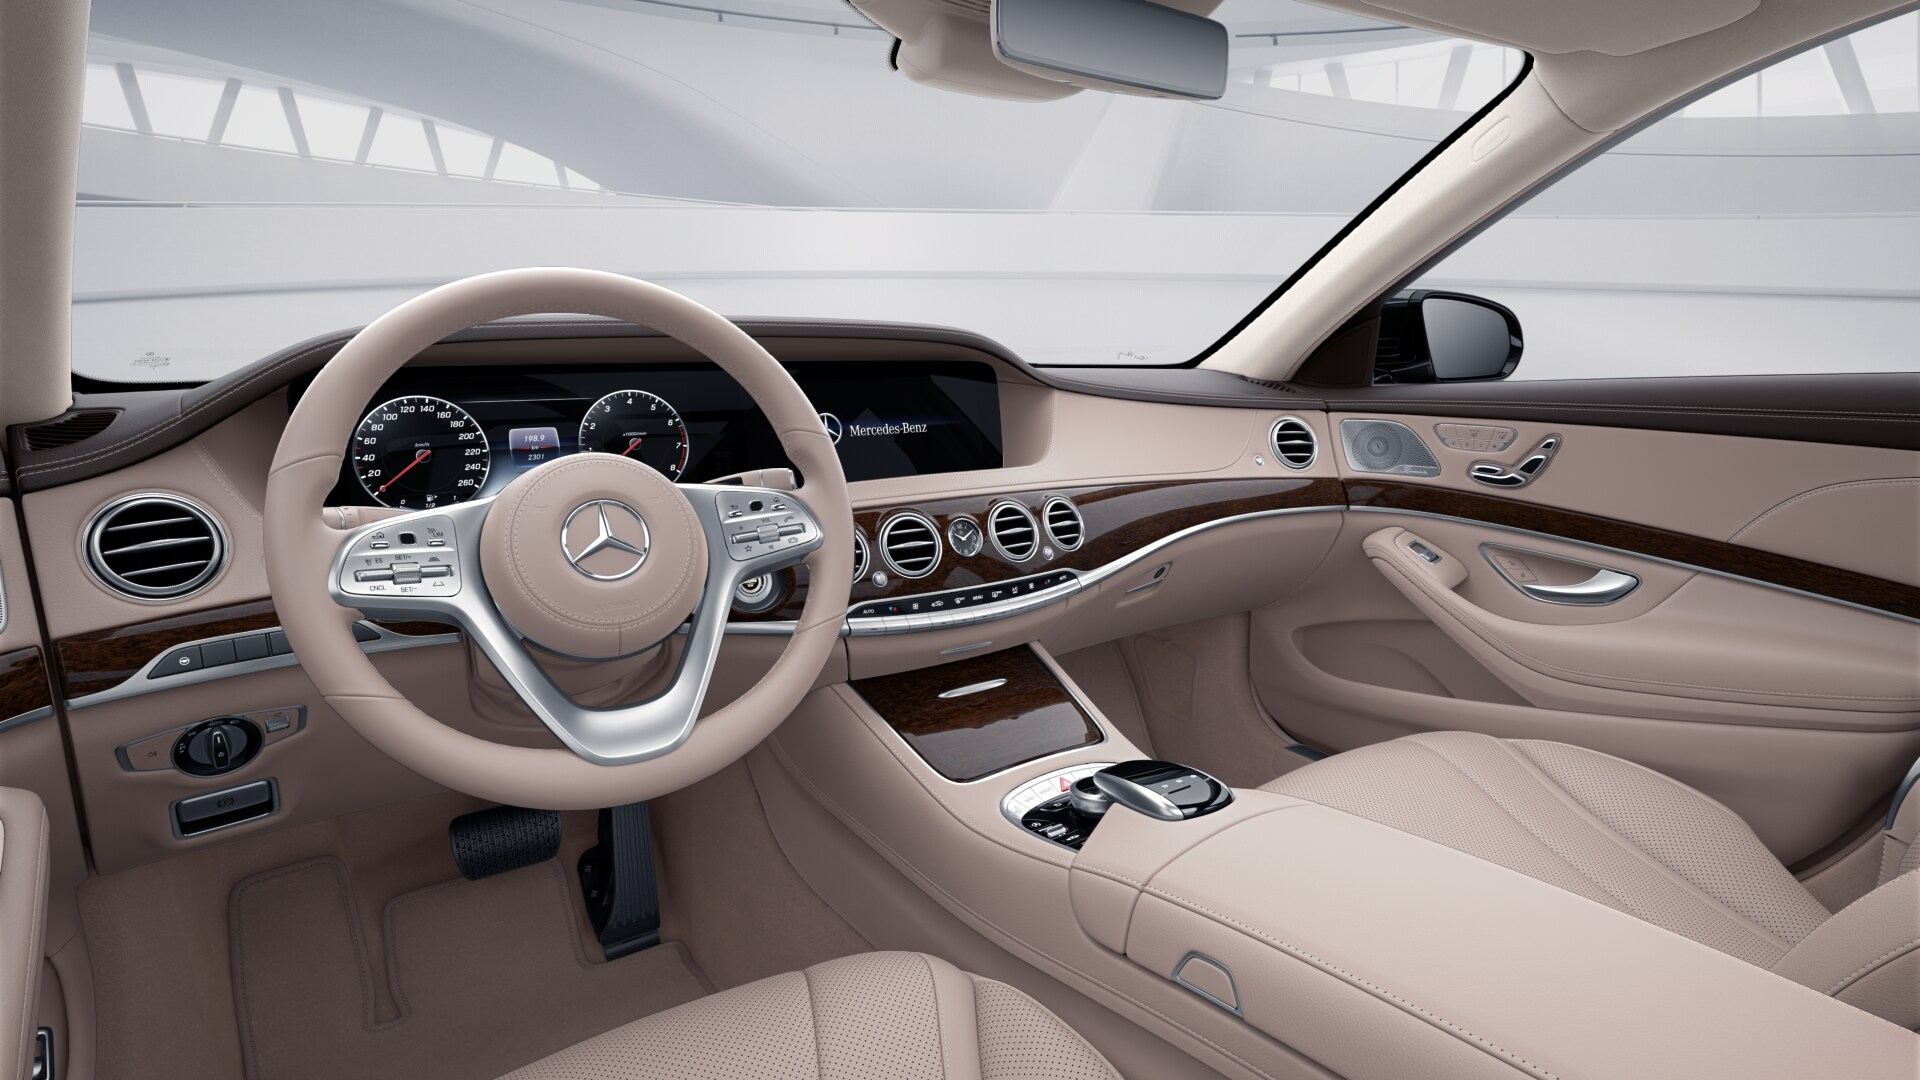 Mercedes Benz Luxury Sedan S-Class